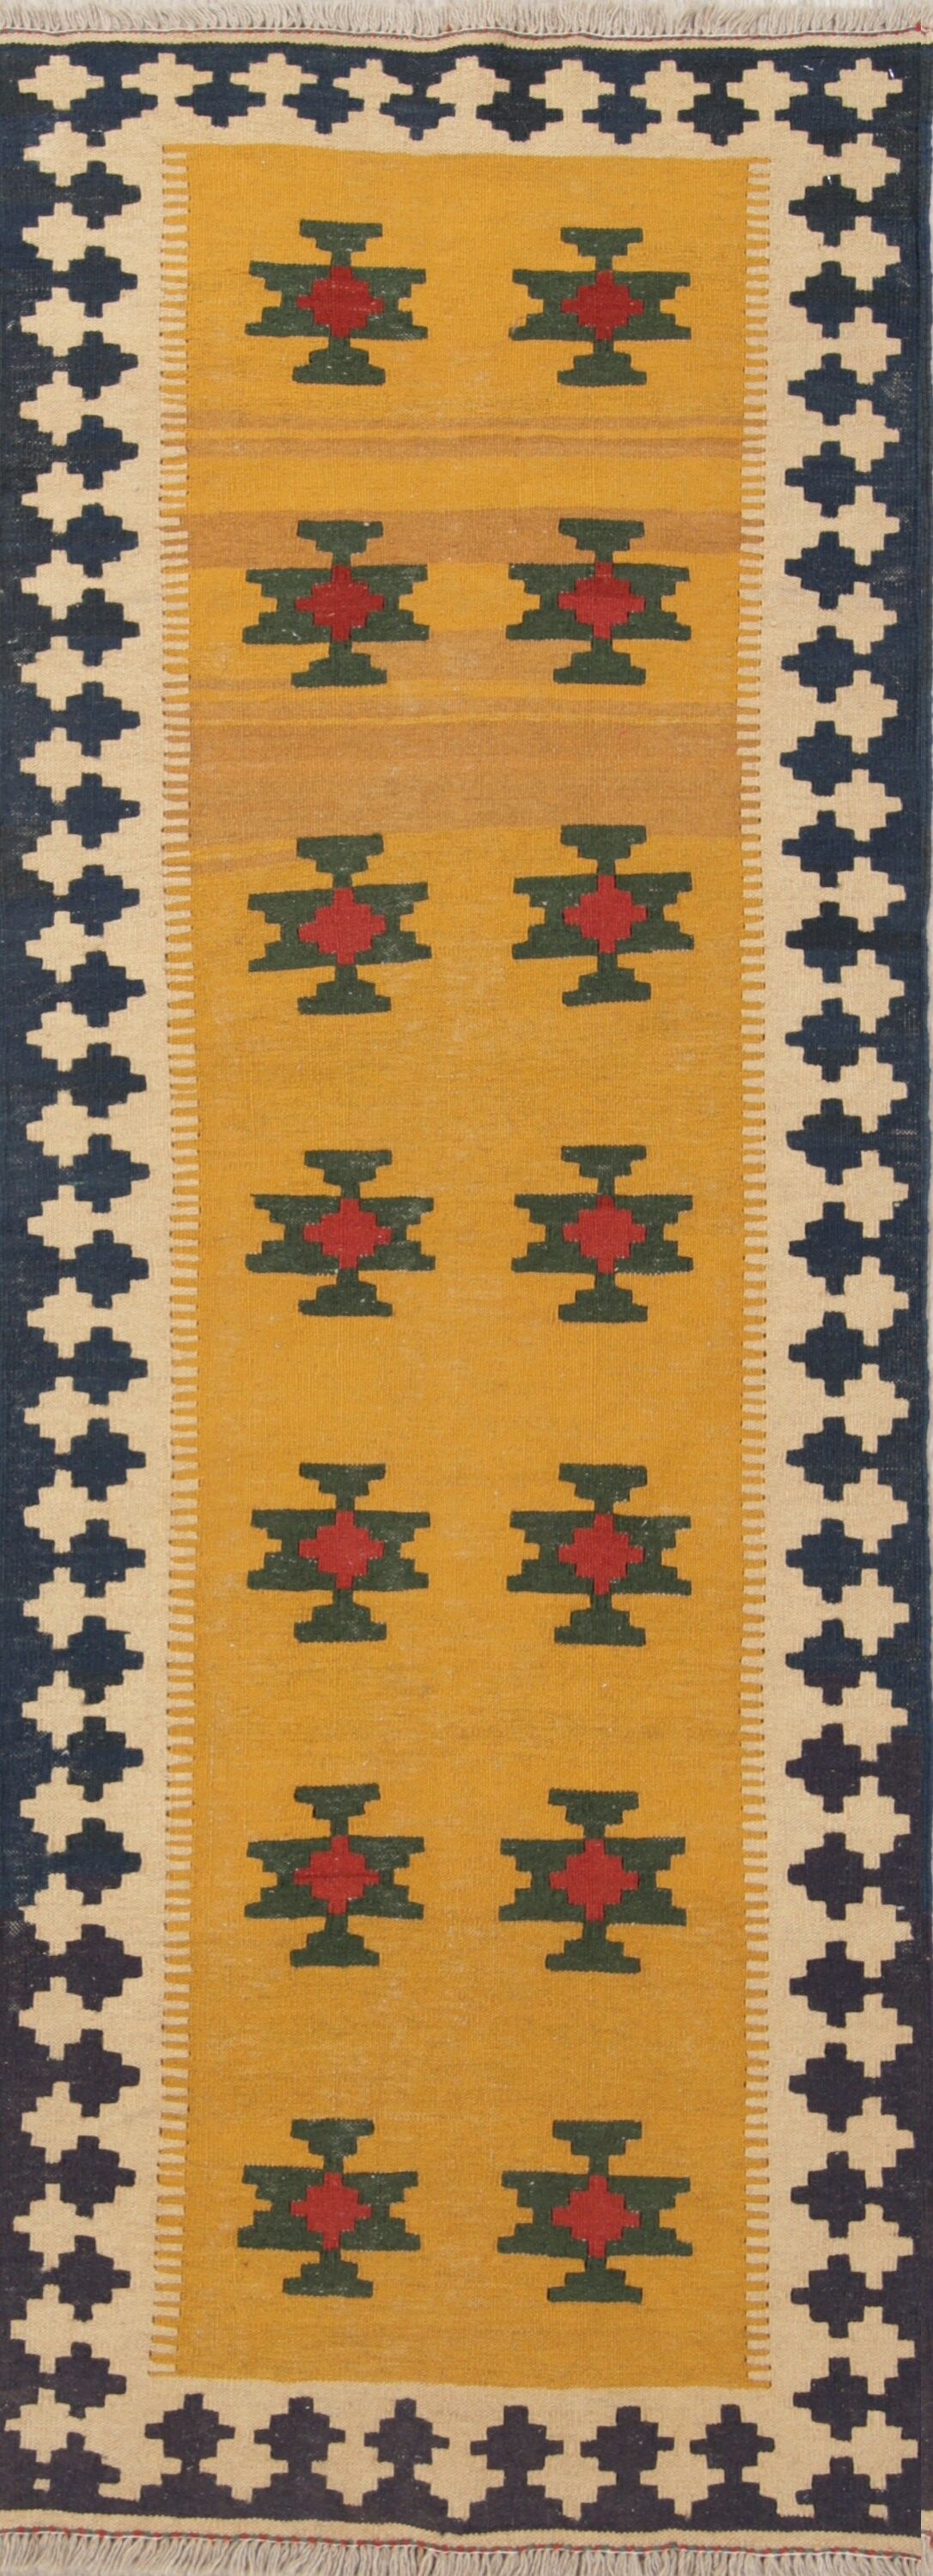 One-of-a-Kind Geometric Tribal Kilim Shiraz Persian Hand-Knotted 2'9